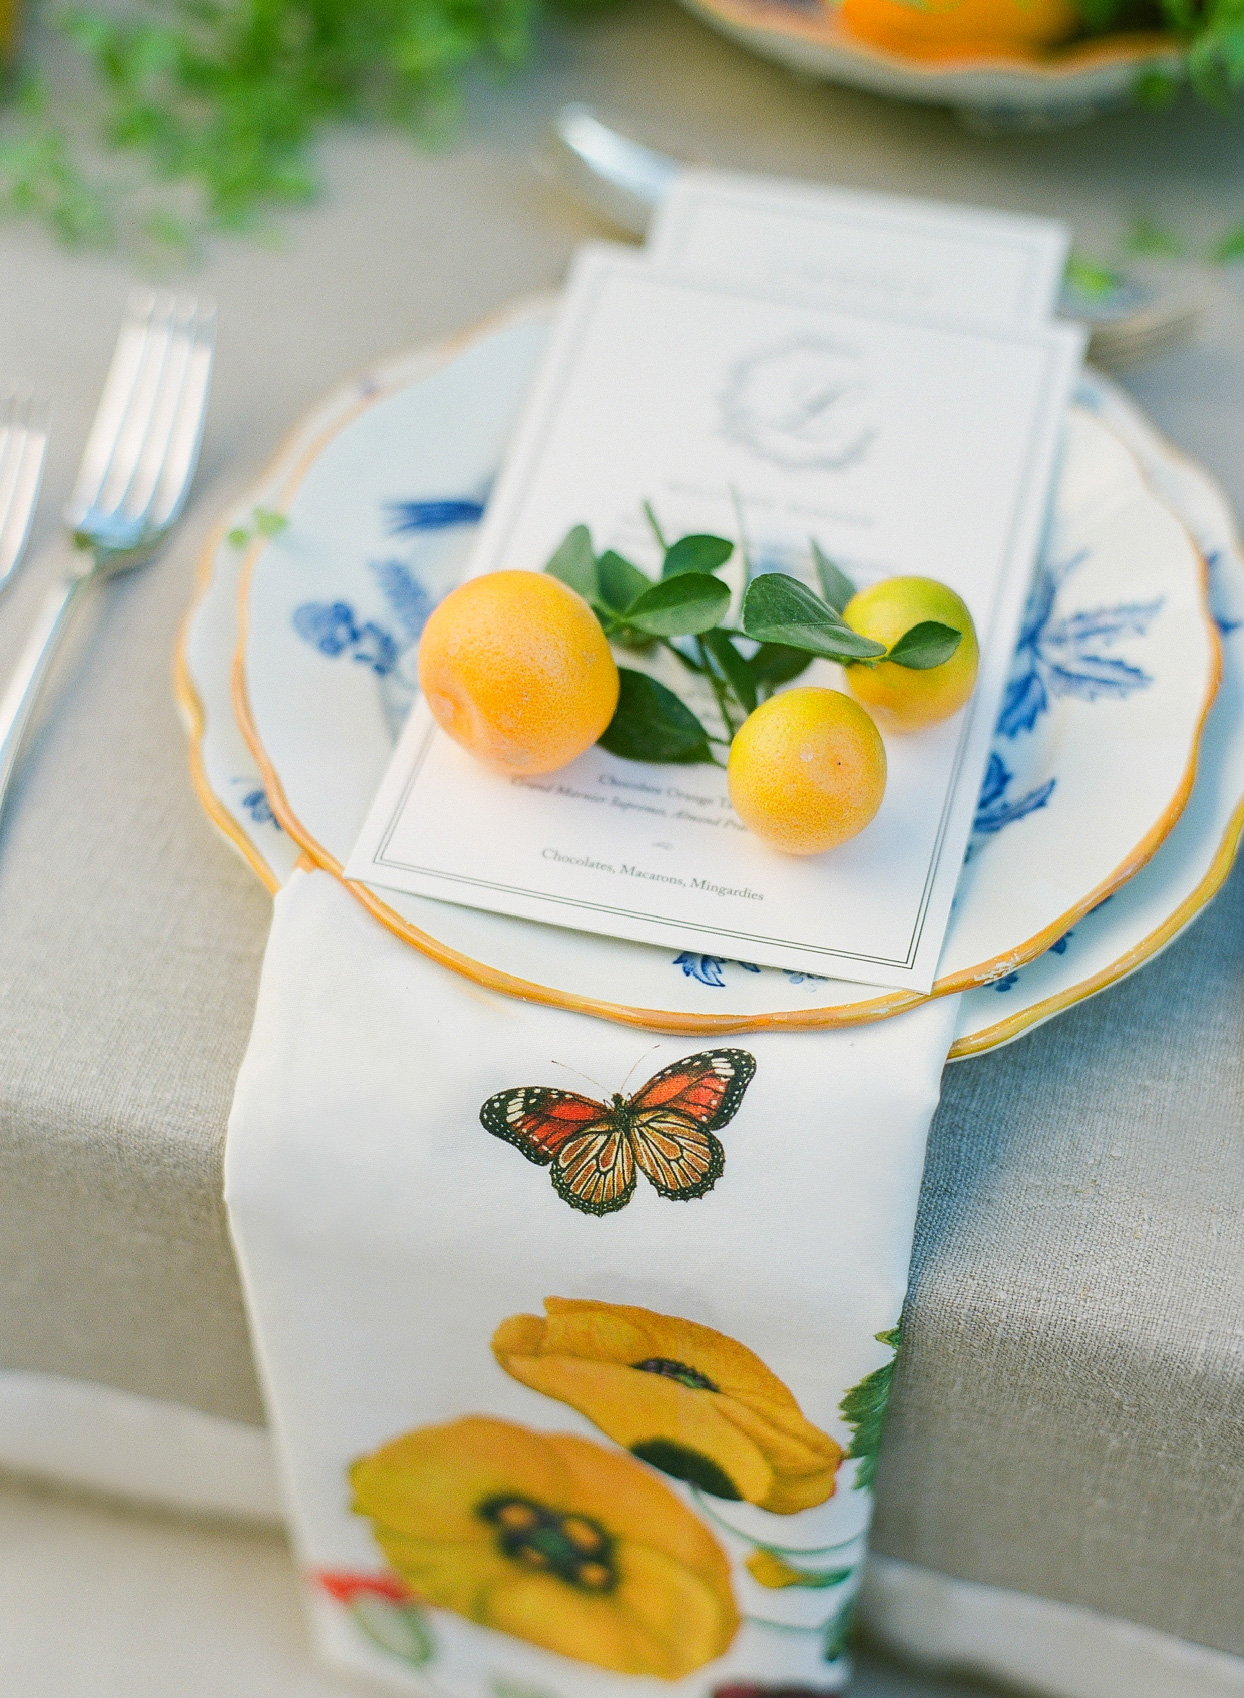 wedding place setting with orange citrus and floral decorations